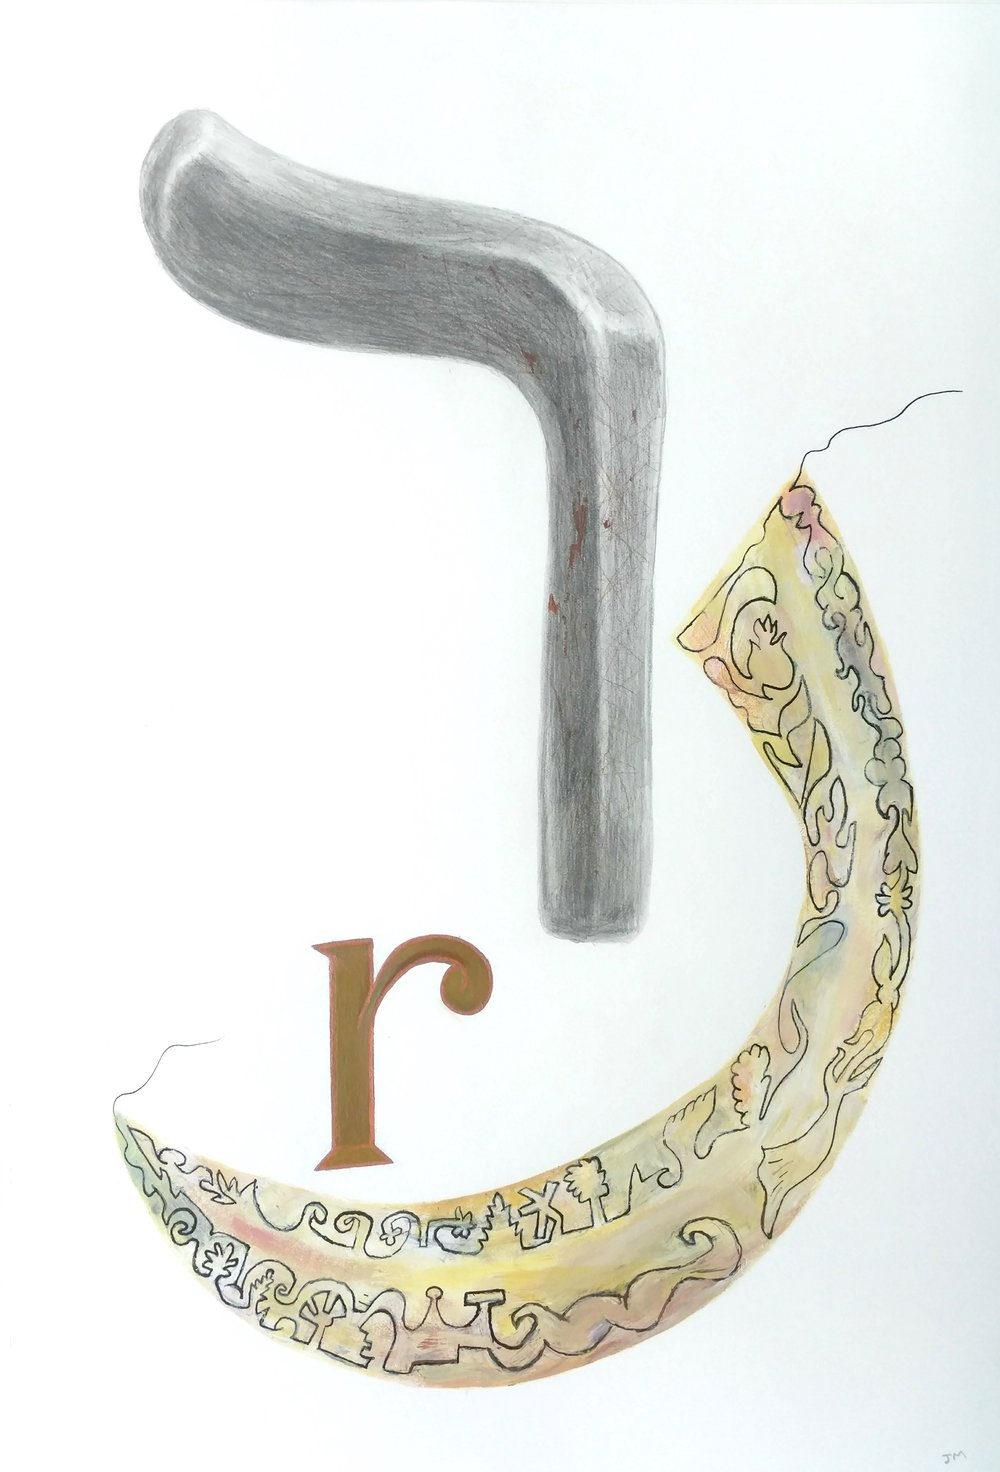 Joel Moskowitz,  Arabic  Raa and  Hebrew  Resh , with R,  Mixed media on paper, 22x15